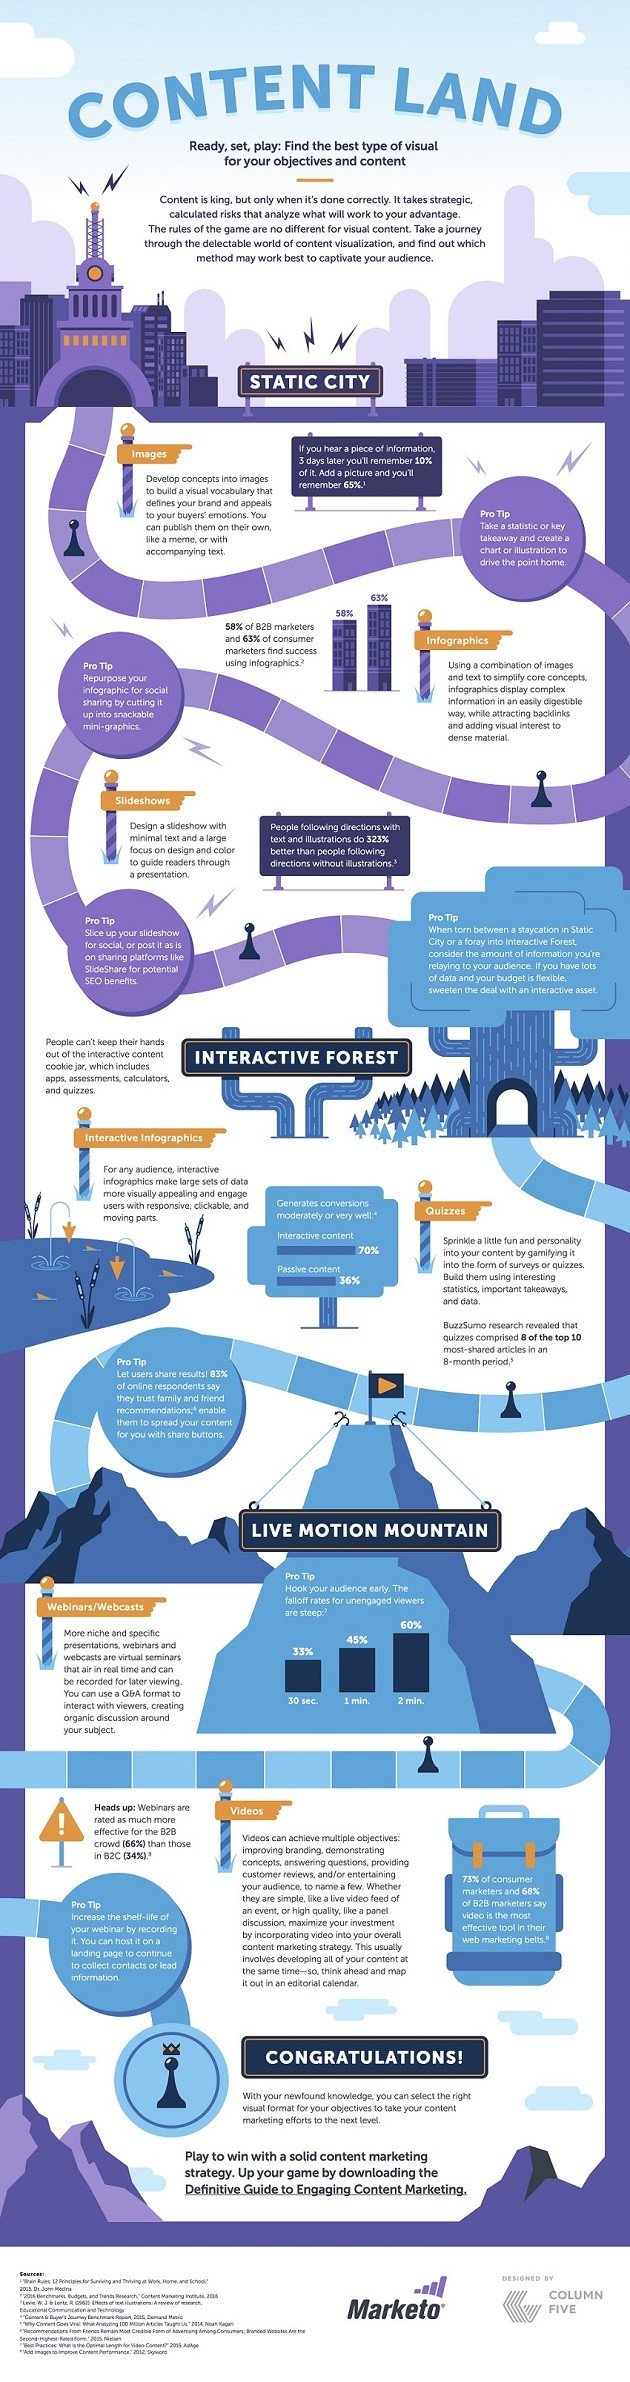 Infographic How to Play the Game of Content Land and Win